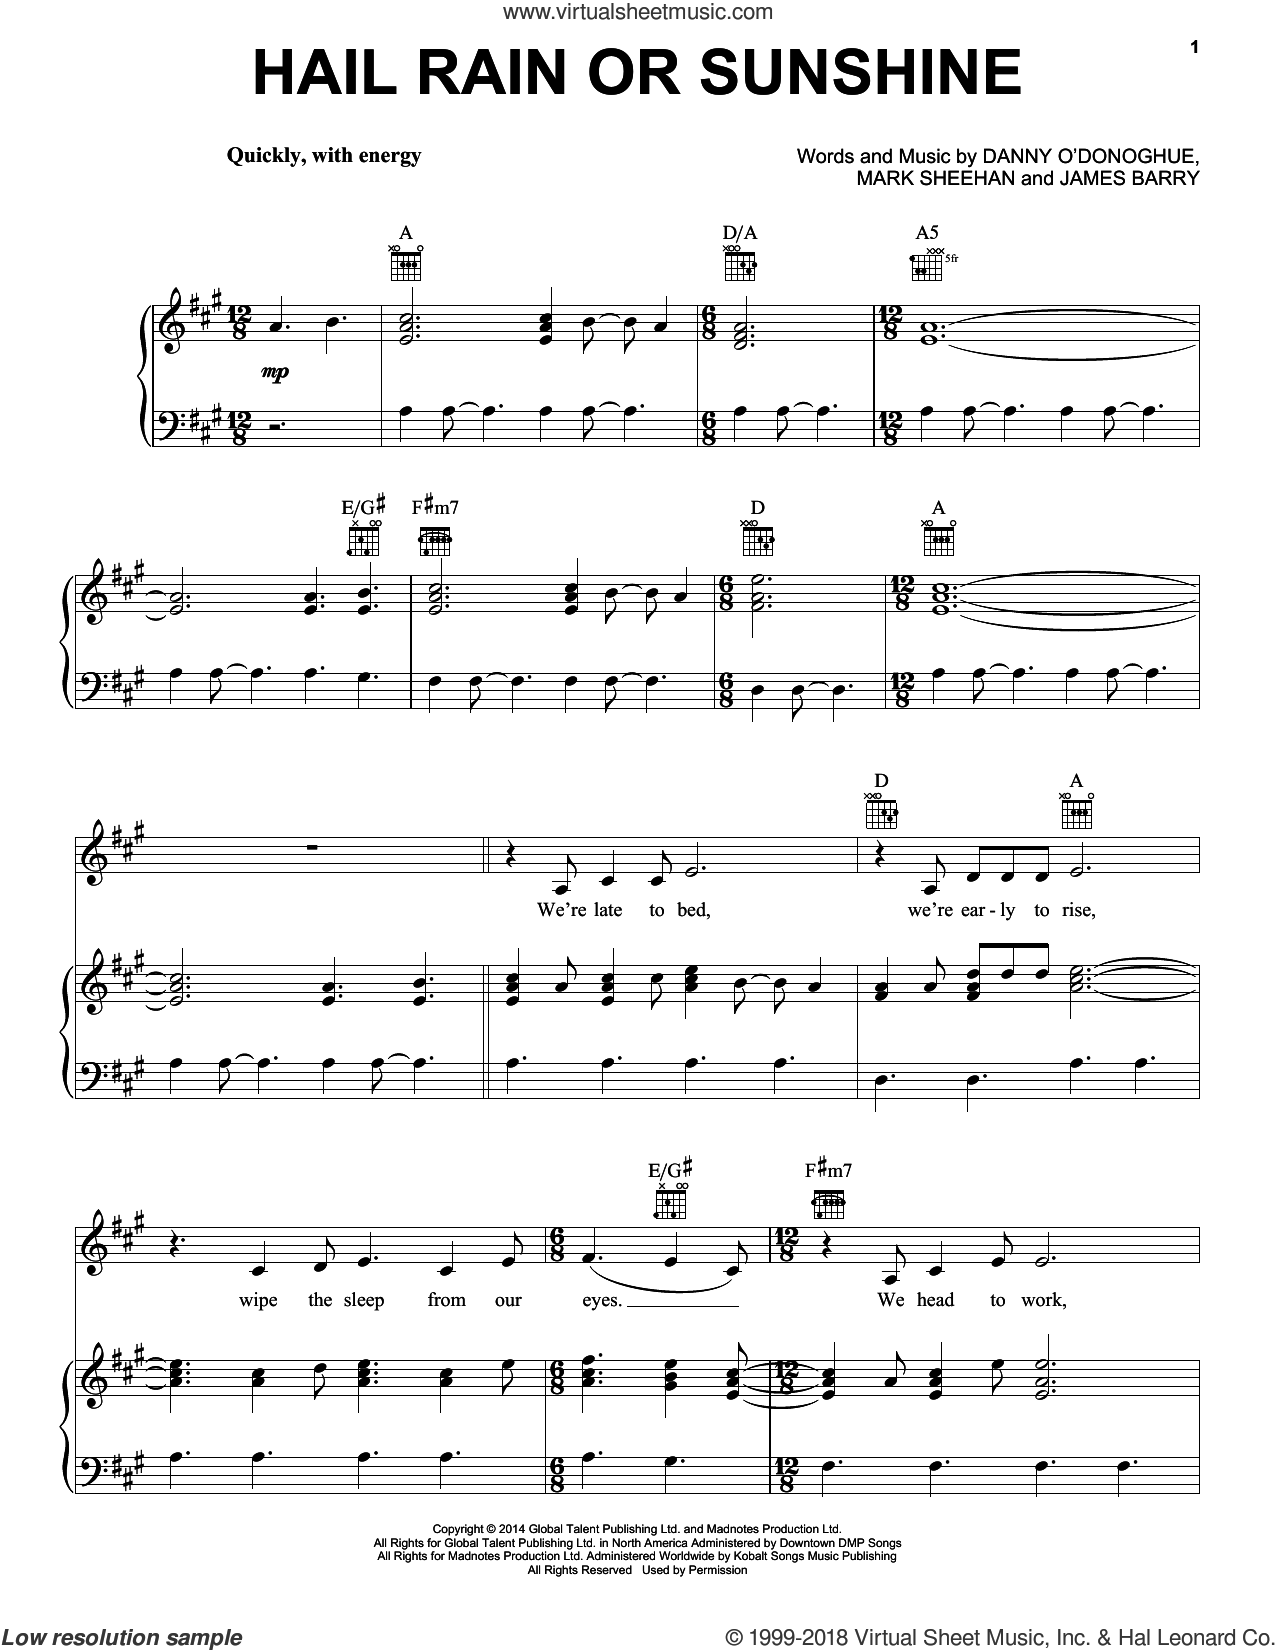 Hail Rain Or Sunshine sheet music for voice, piano or guitar by The Script, James Barry and Mark Sheehan, intermediate skill level